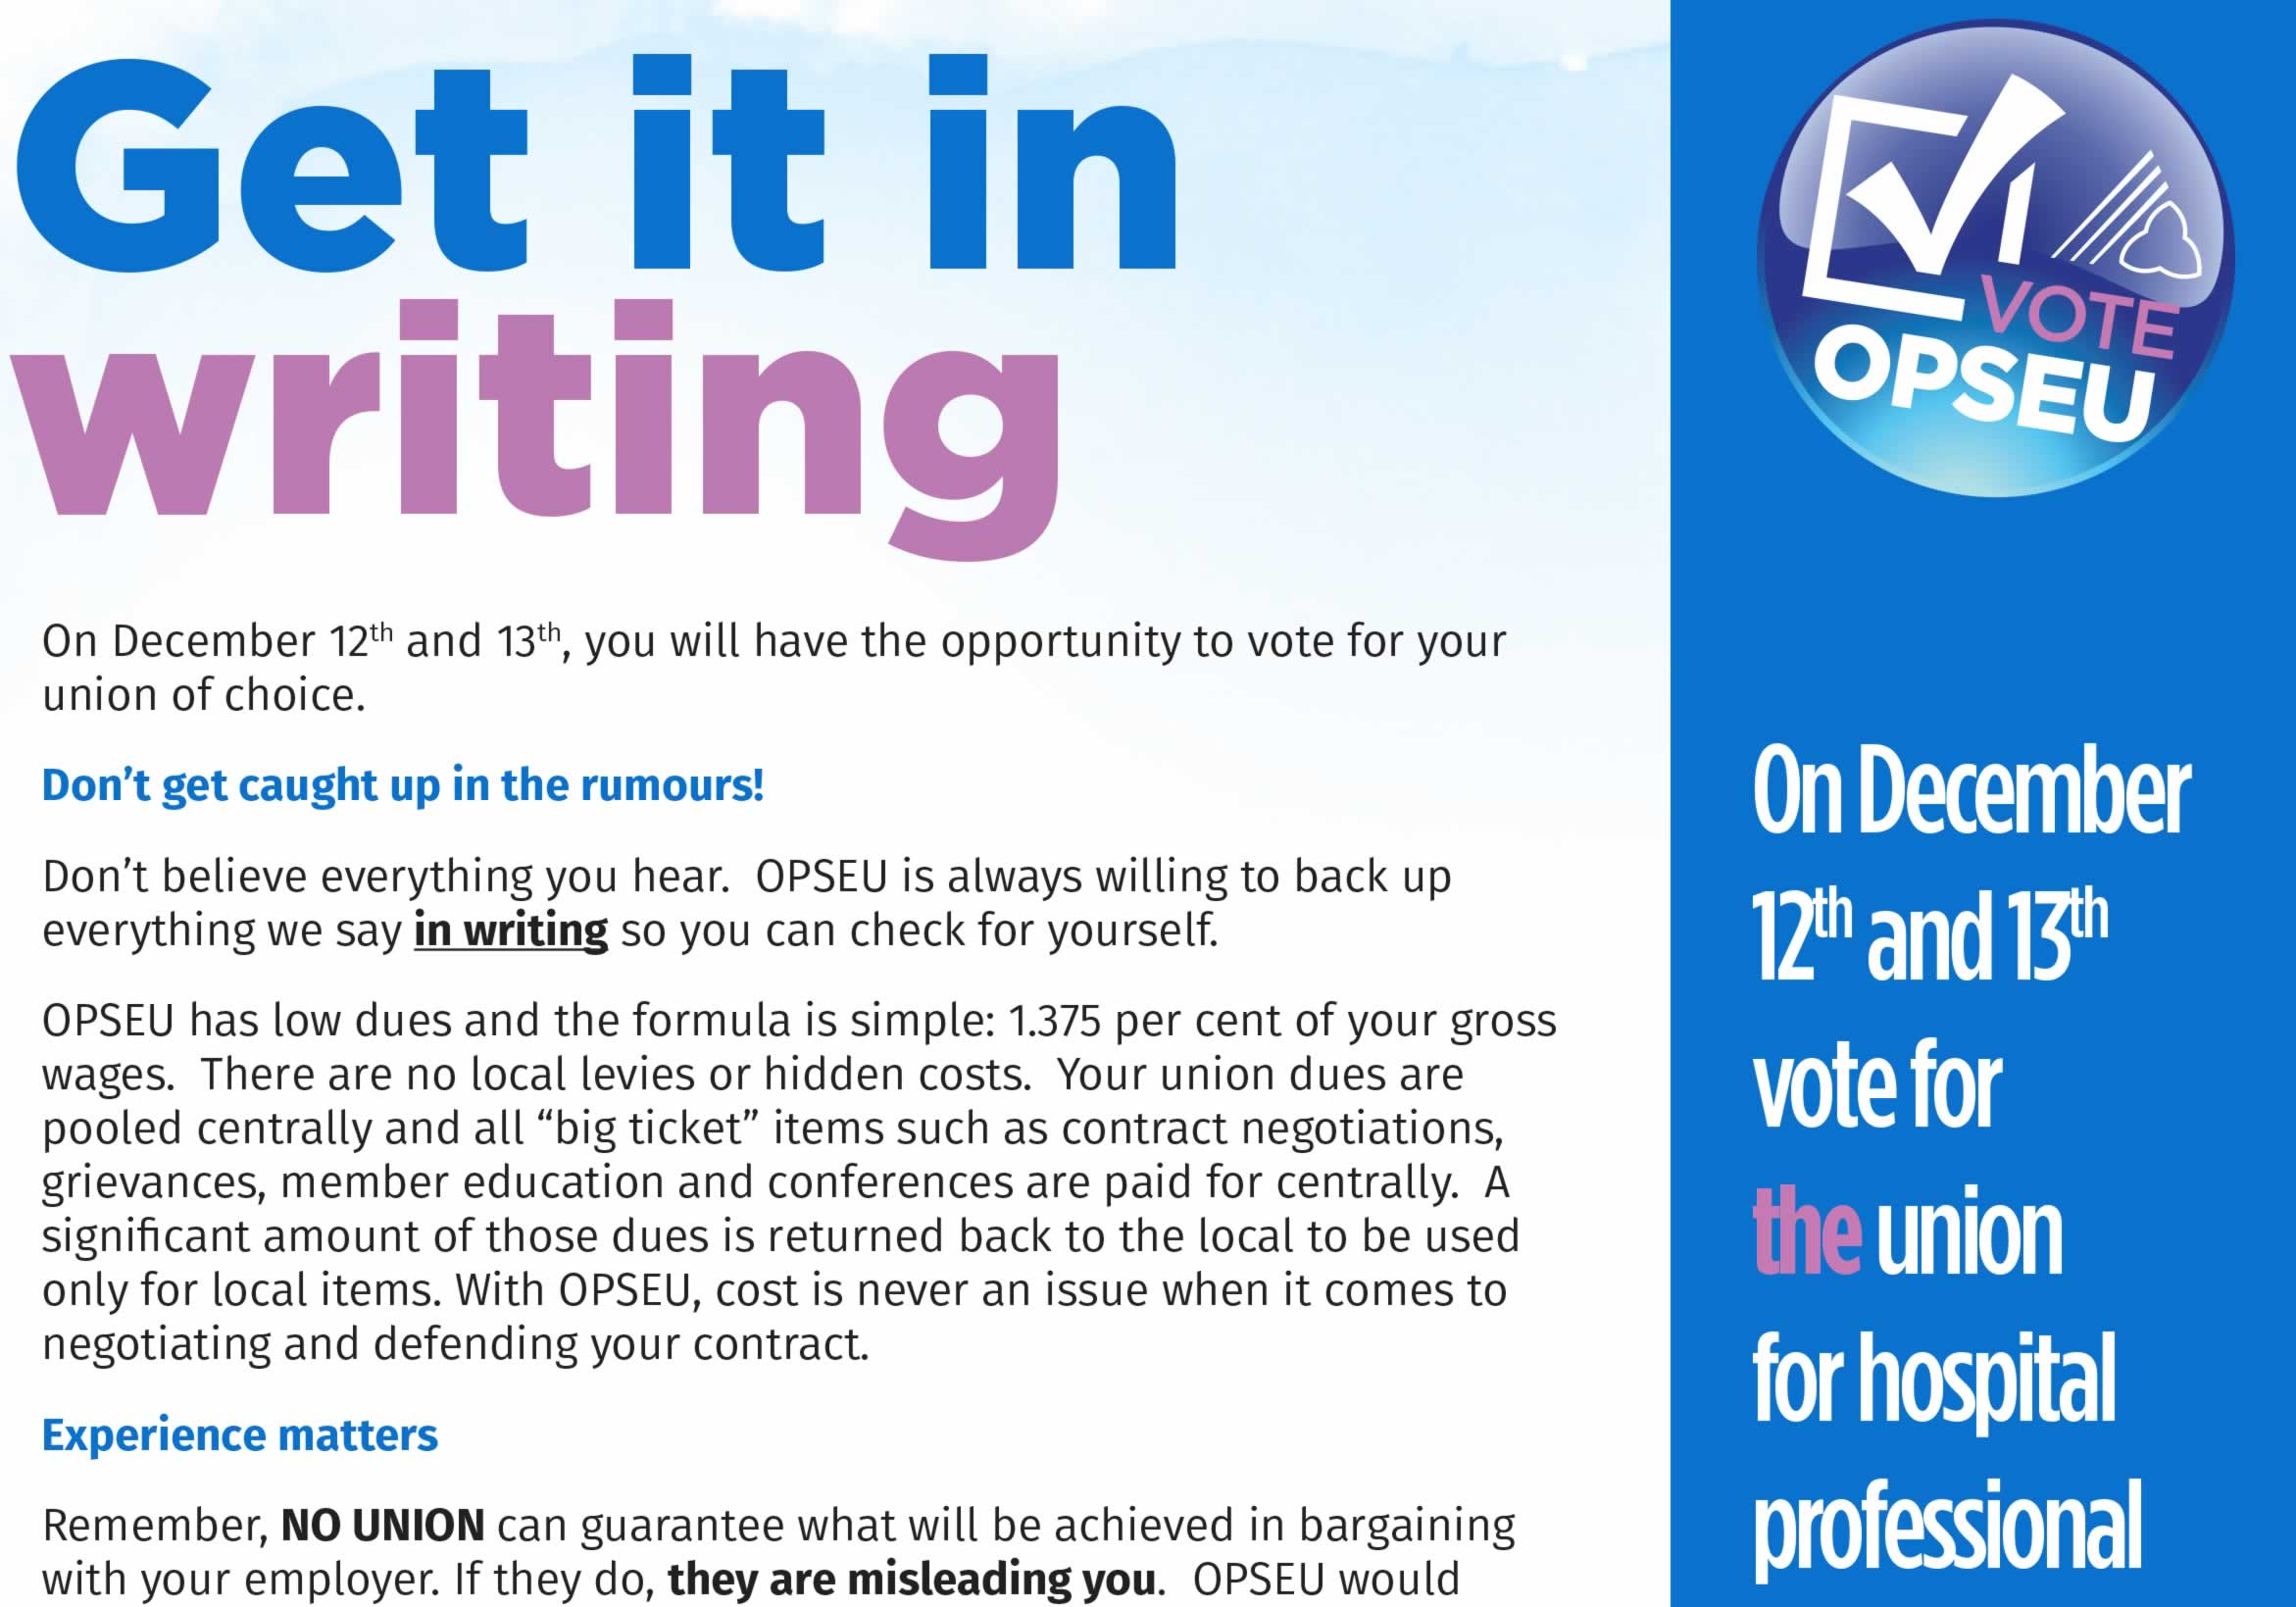 Get it in writing. Vote OPSEU.